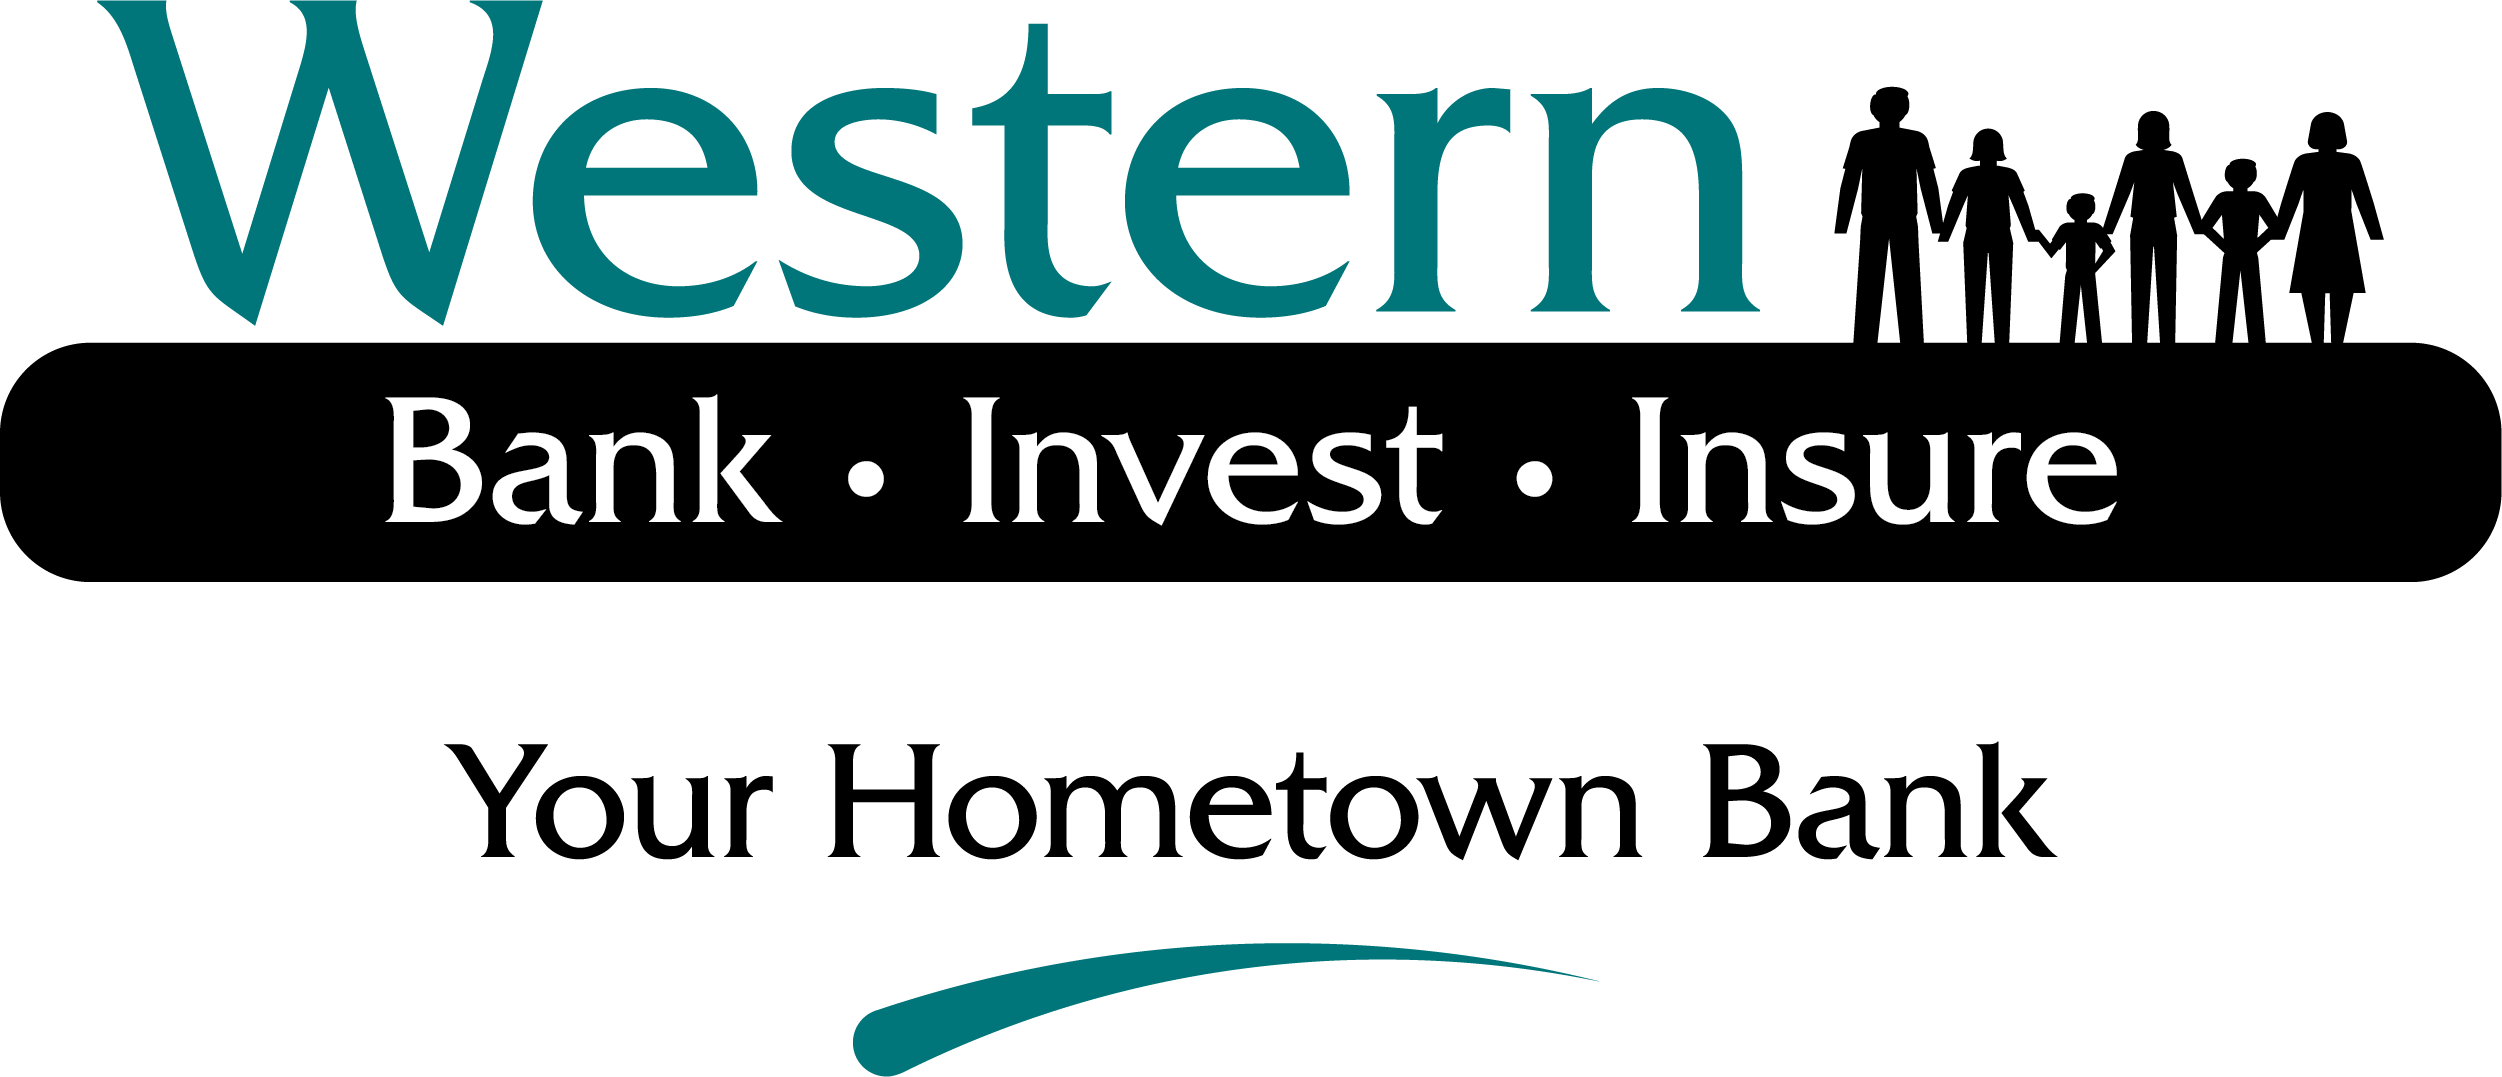 Western State Bank Review 2020